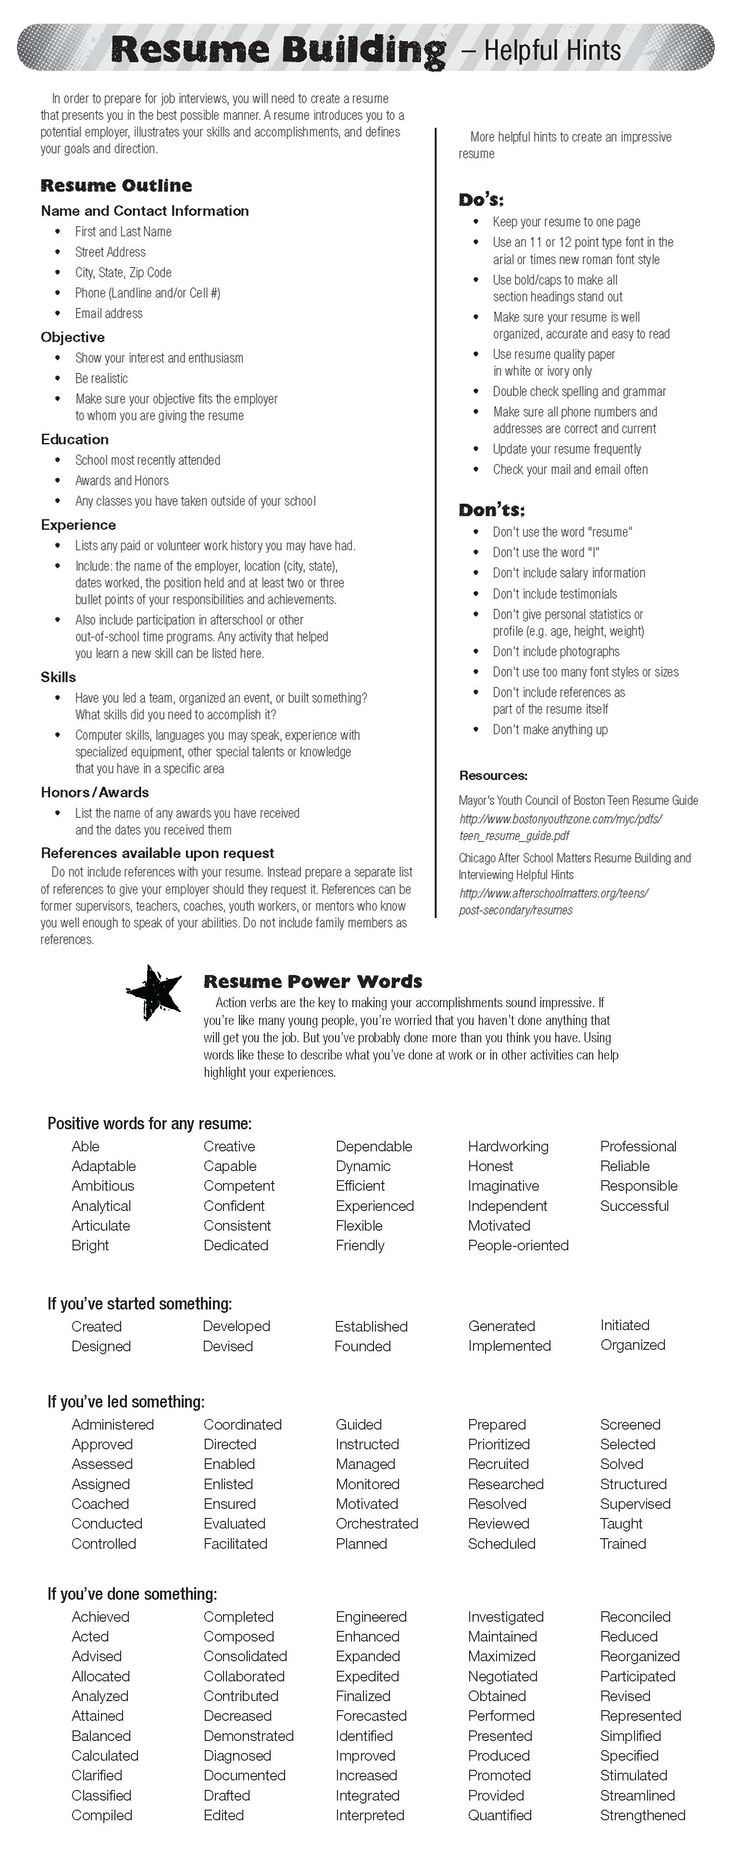 Picnictoimpeachus  Outstanding  Ideas About Resume On Pinterest  Cv Format Resume Cv And  With Lovely  Ideas About Resume On Pinterest  Cv Format Resume Cv And Resume Templates With Astounding Resume Objective For Part Time Job Also Sample Cosmetology Resume In Addition Free Resumes To Download And Mba Application Resume Sample As Well As Interpersonal Skills On Resume Additionally  Resume Words From Pinterestcom With Picnictoimpeachus  Lovely  Ideas About Resume On Pinterest  Cv Format Resume Cv And  With Astounding  Ideas About Resume On Pinterest  Cv Format Resume Cv And Resume Templates And Outstanding Resume Objective For Part Time Job Also Sample Cosmetology Resume In Addition Free Resumes To Download From Pinterestcom